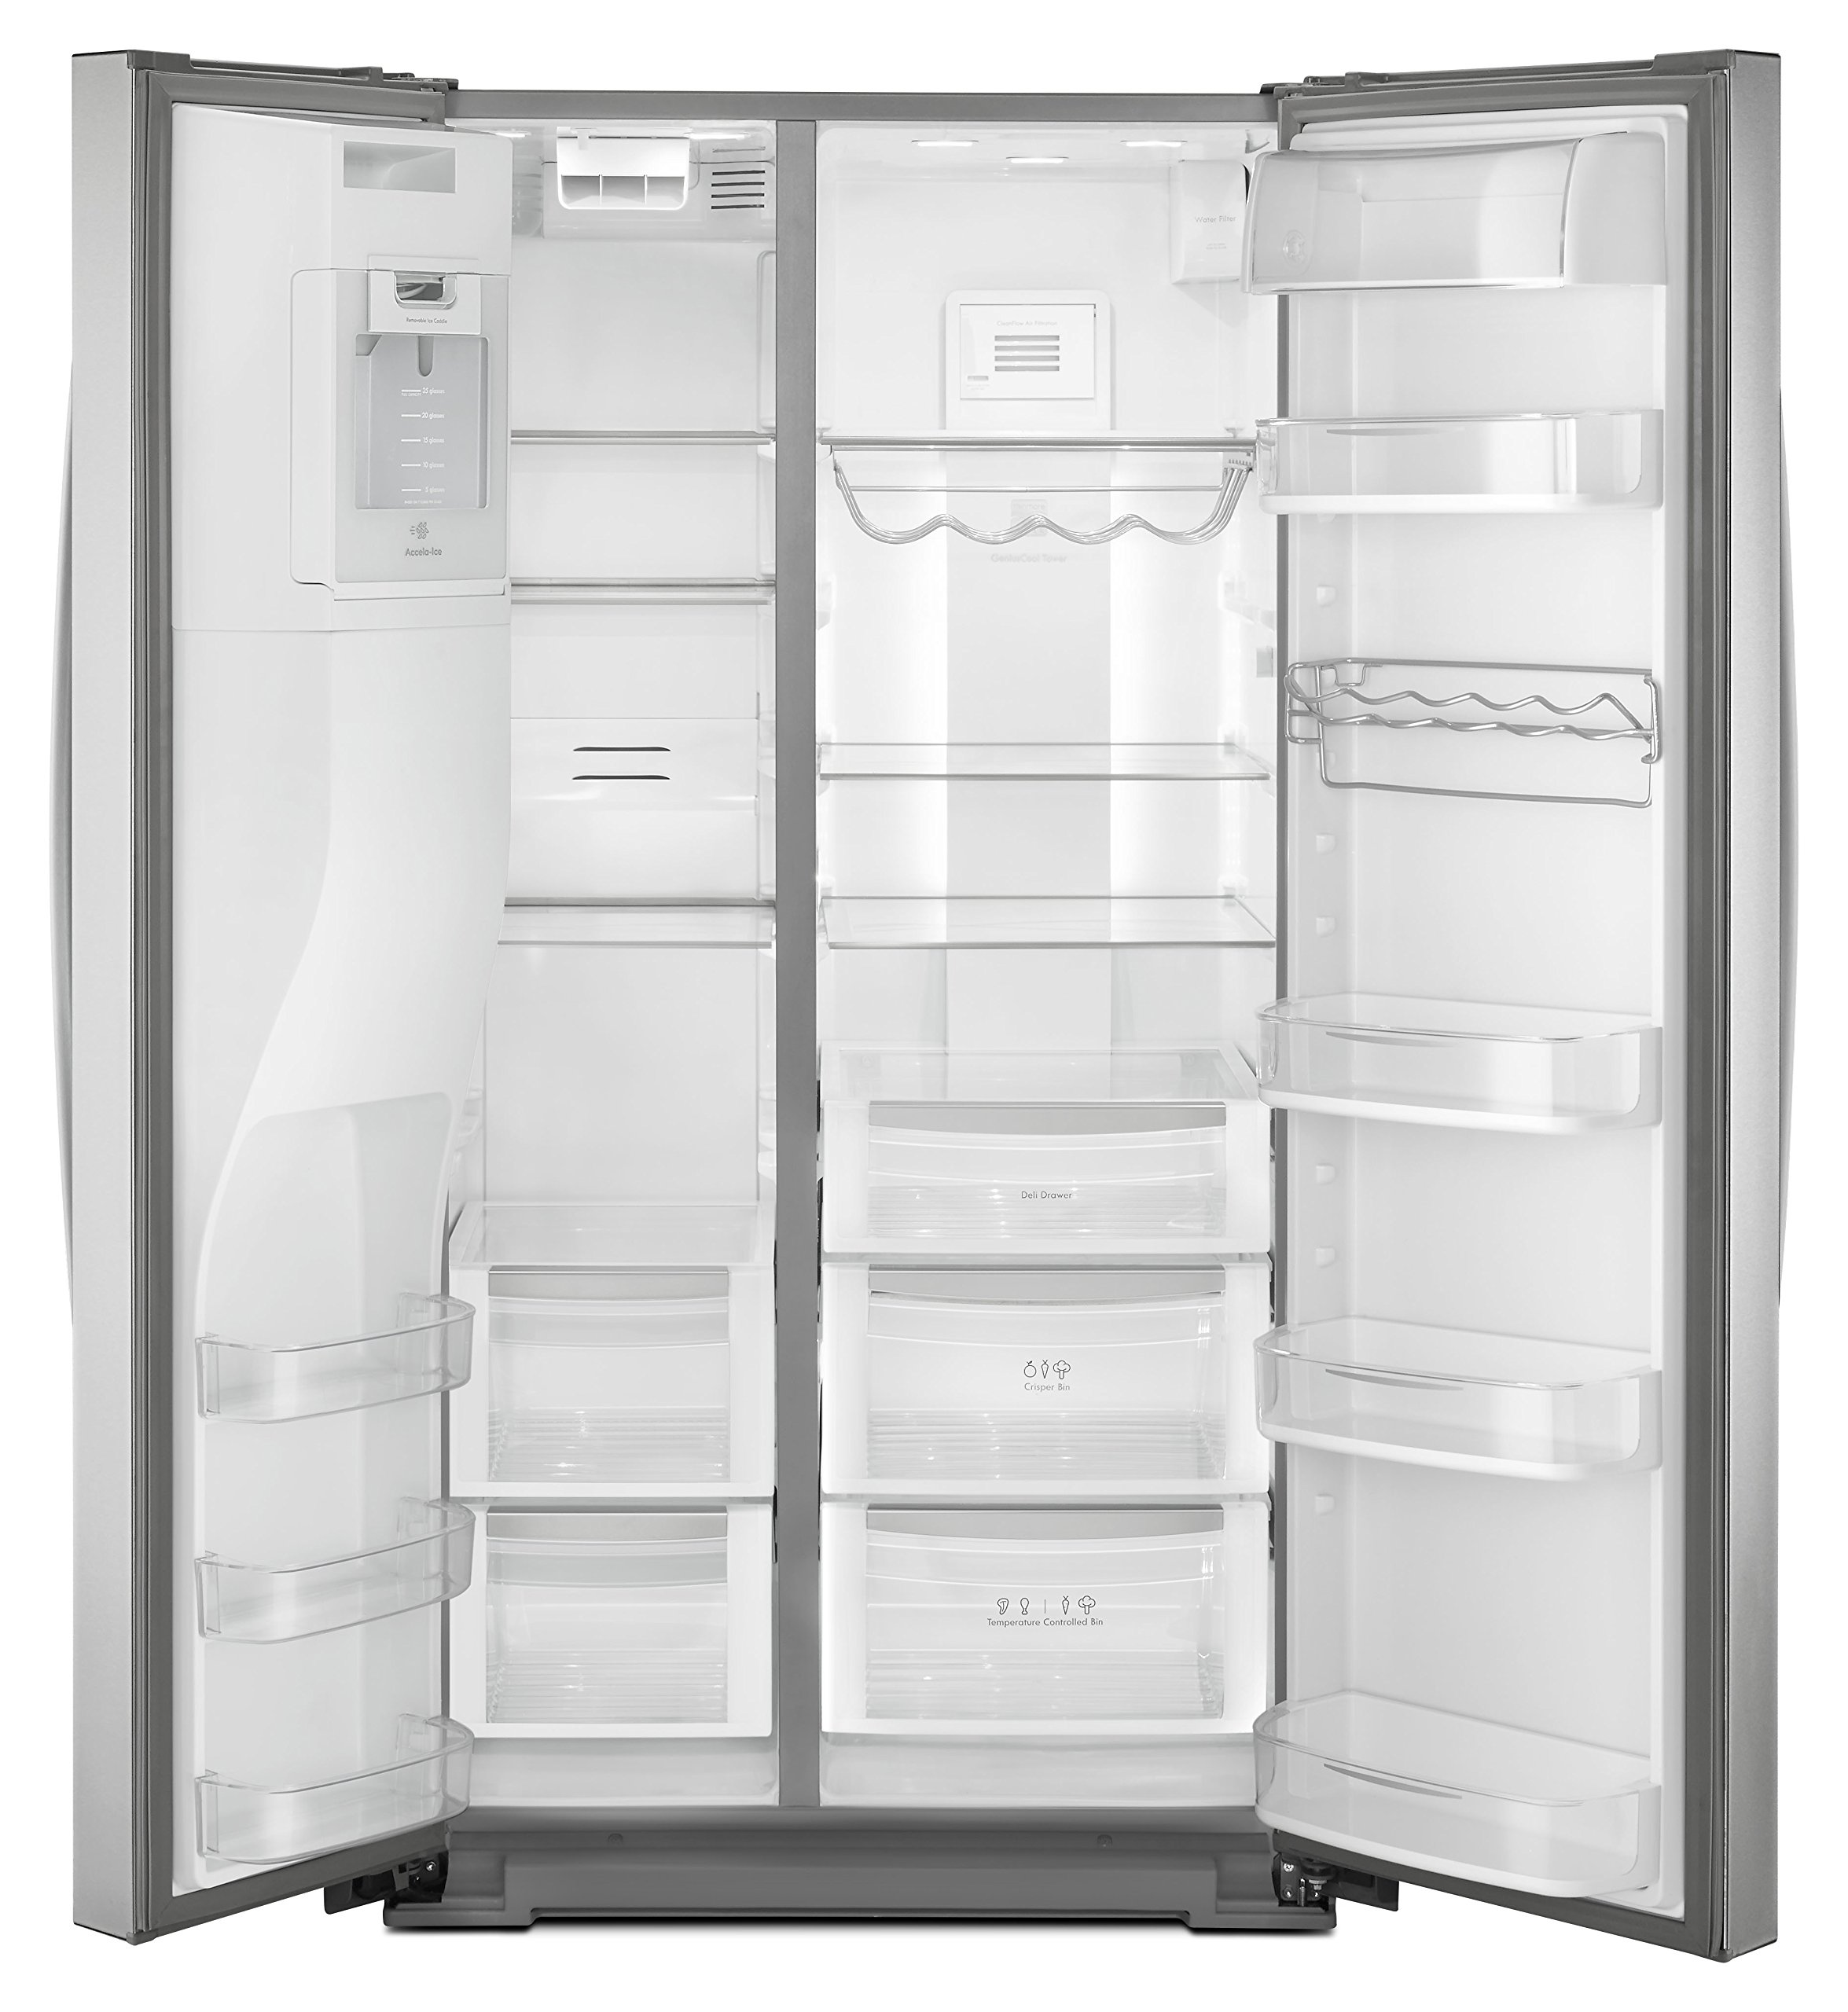 Kenmore Elite 51773 28 cu. ft. Side-by-Side Refrigerator with Accela Ice Technology in Stainless Steel, includes delivery and hookup (Available in select cities only) by Kenmore (Image #5)